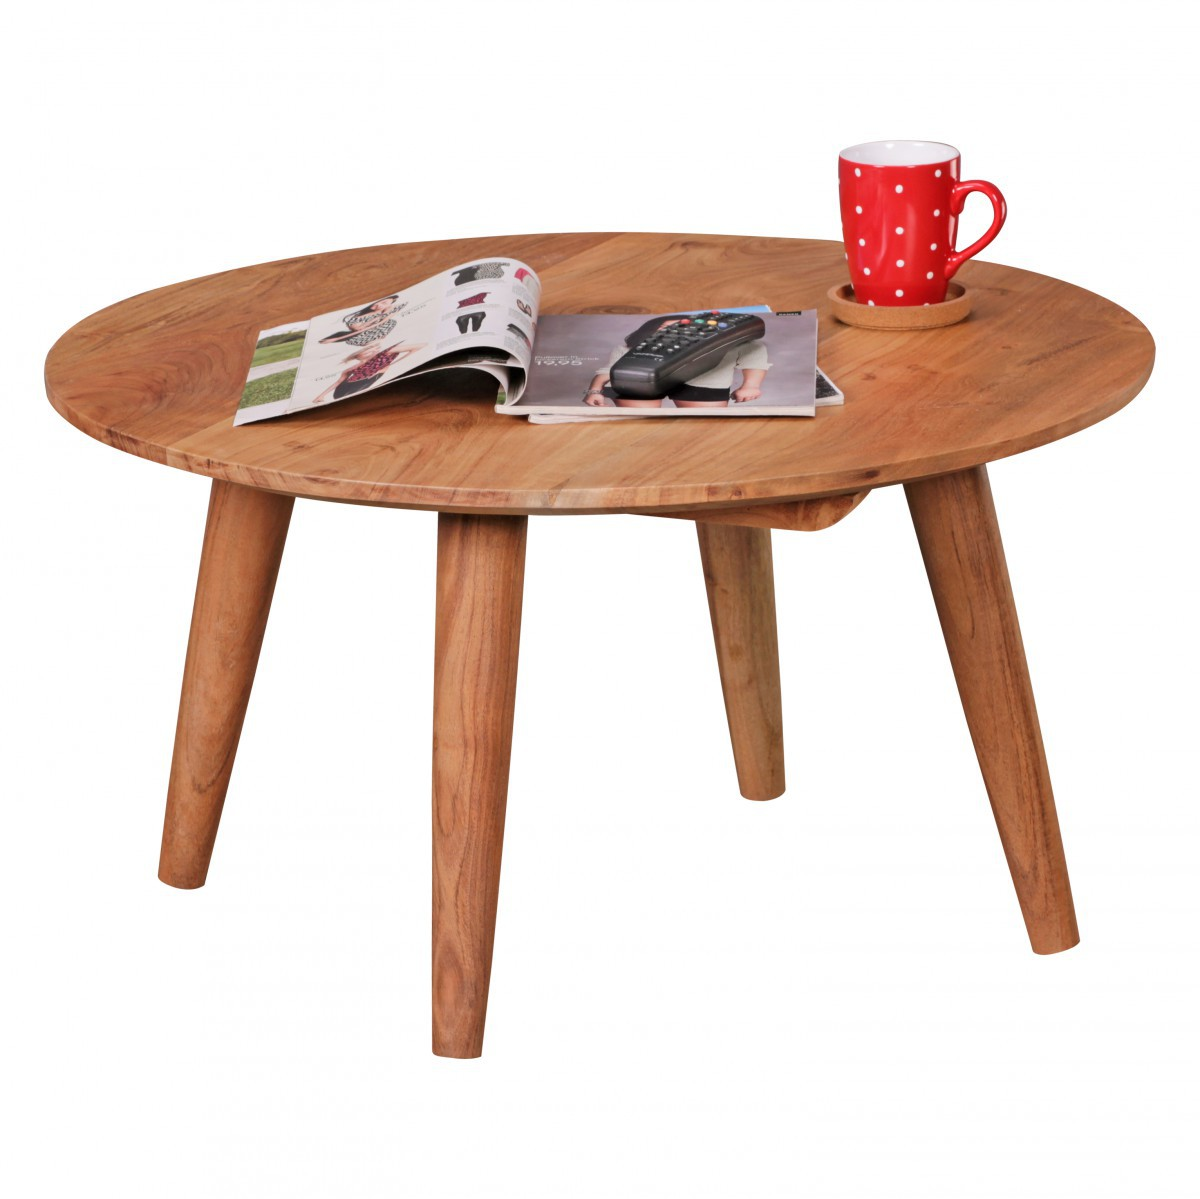 Finebuy table basse en bois massif acacia table basse ronde 75 x 40 cm ferme - Table basse ronde metal ...